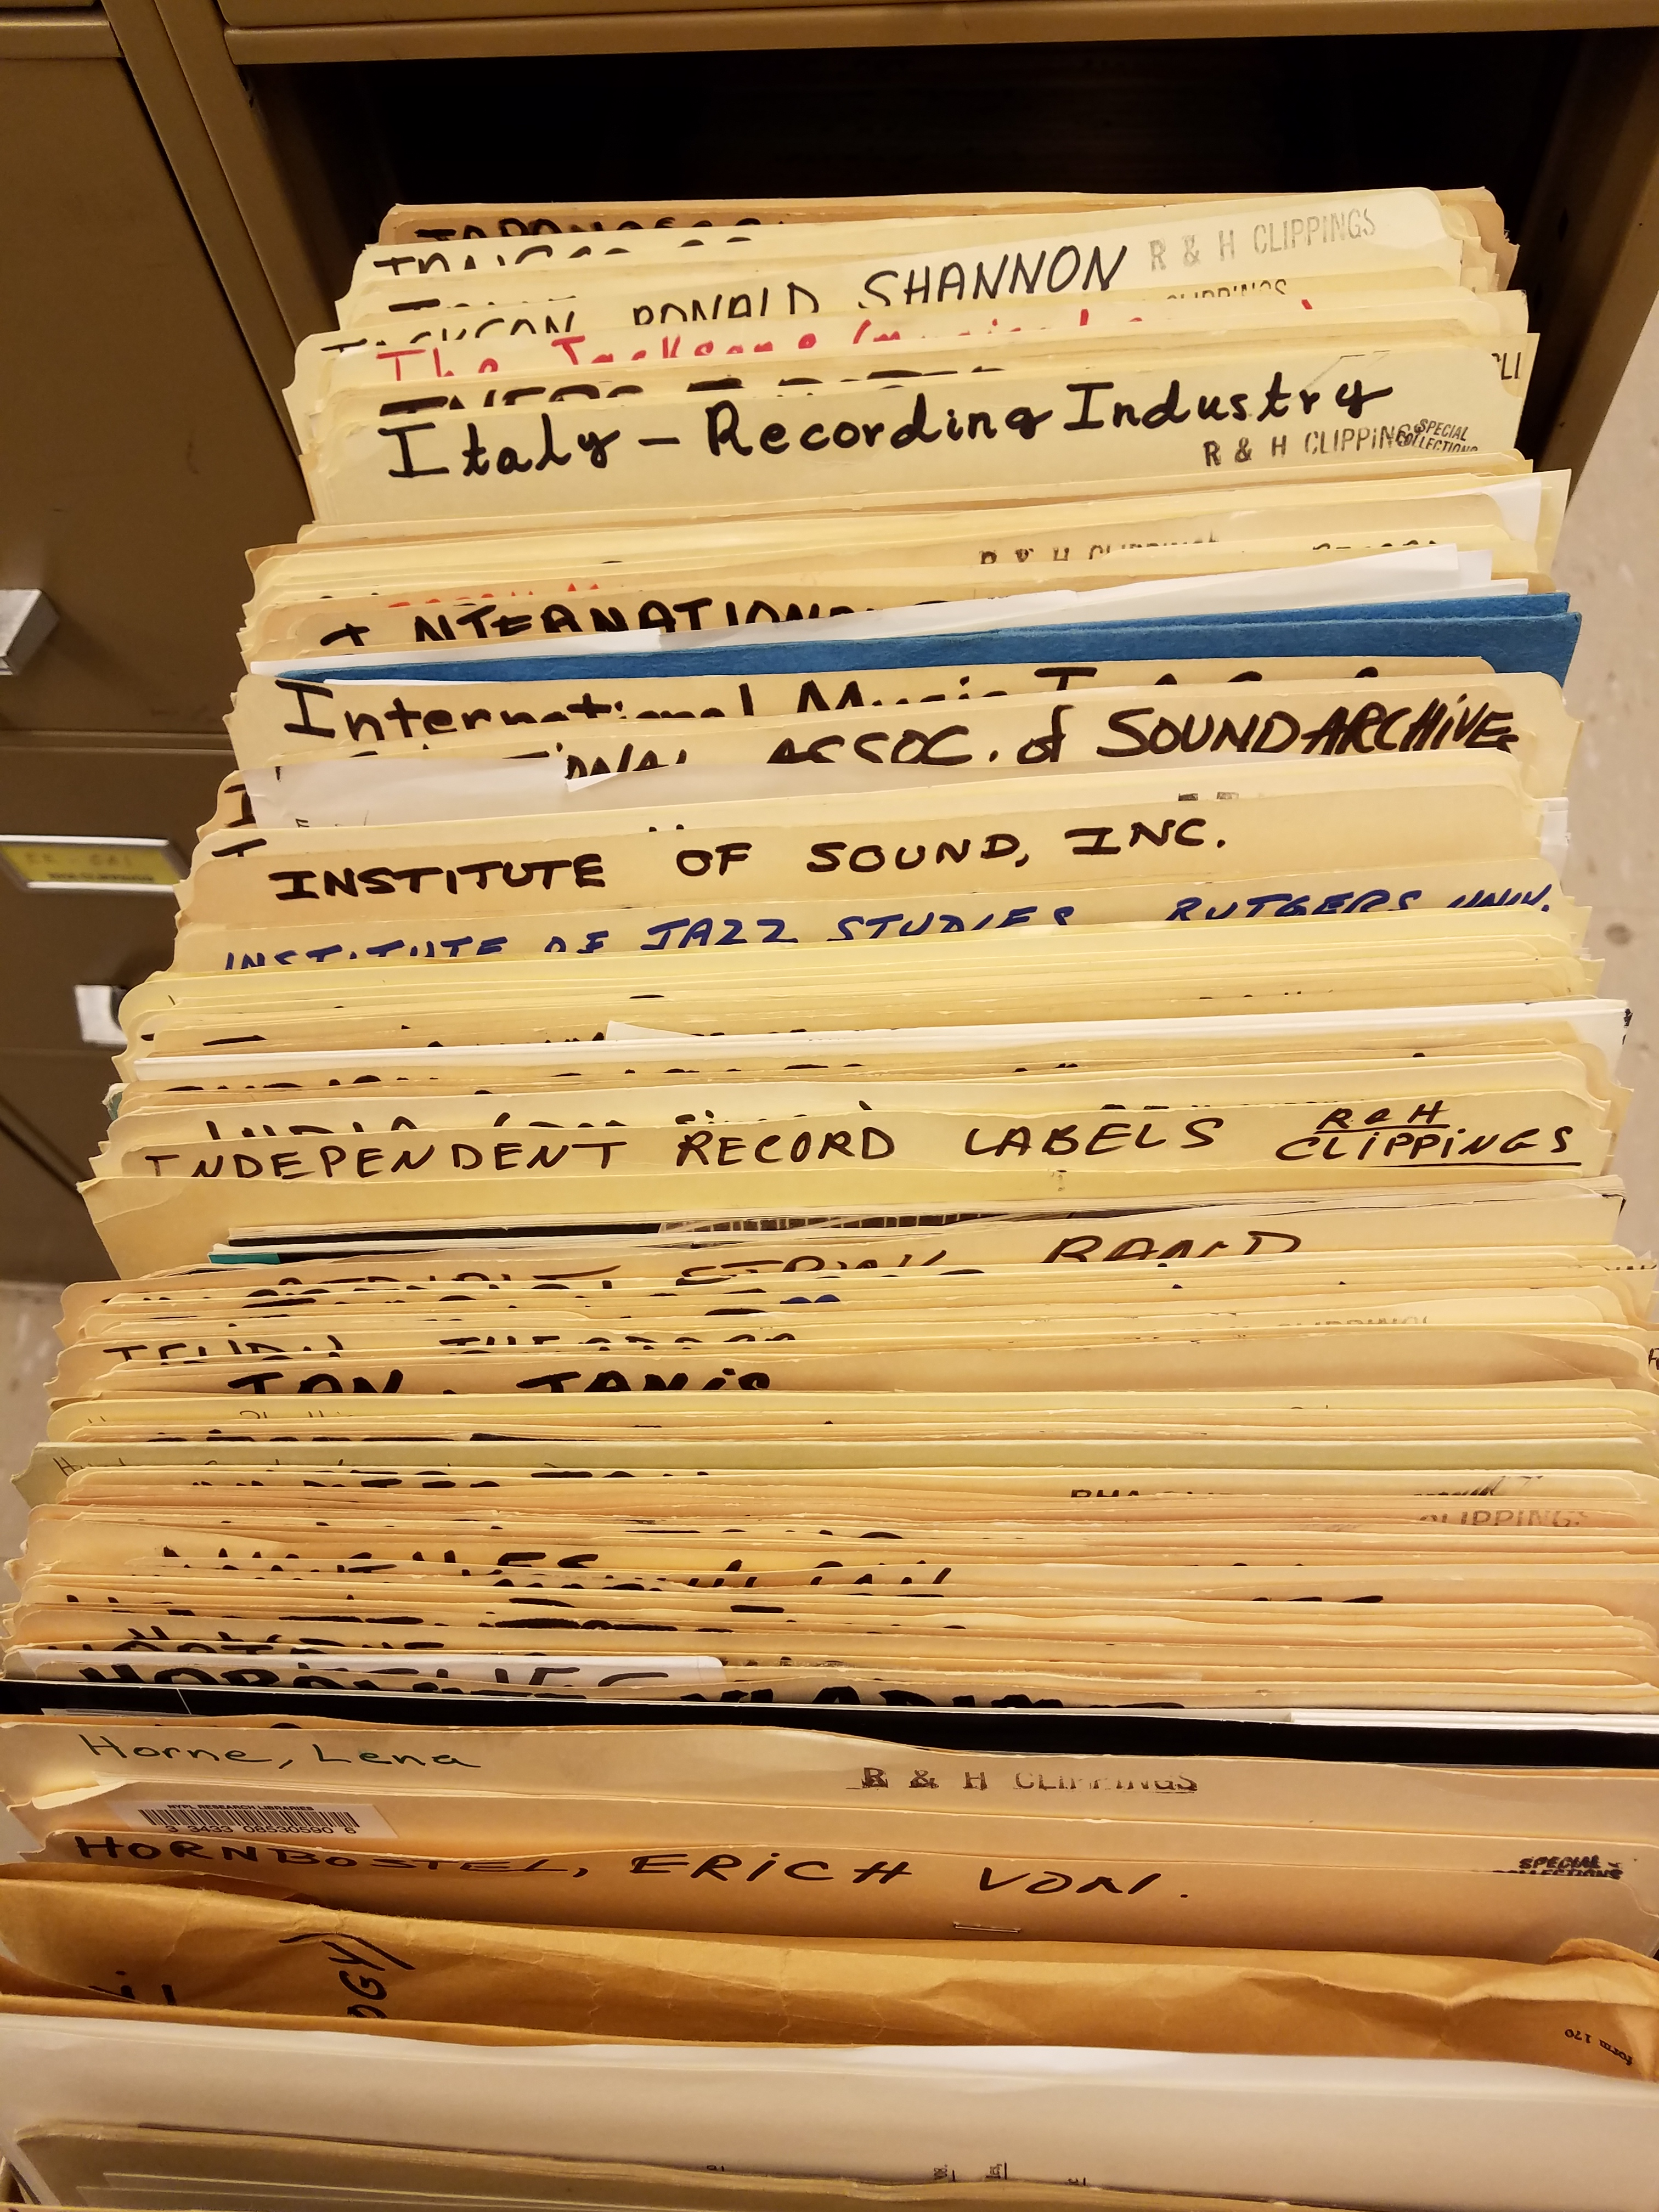 A drawer of clipping file folders for the Recorded Sound Division